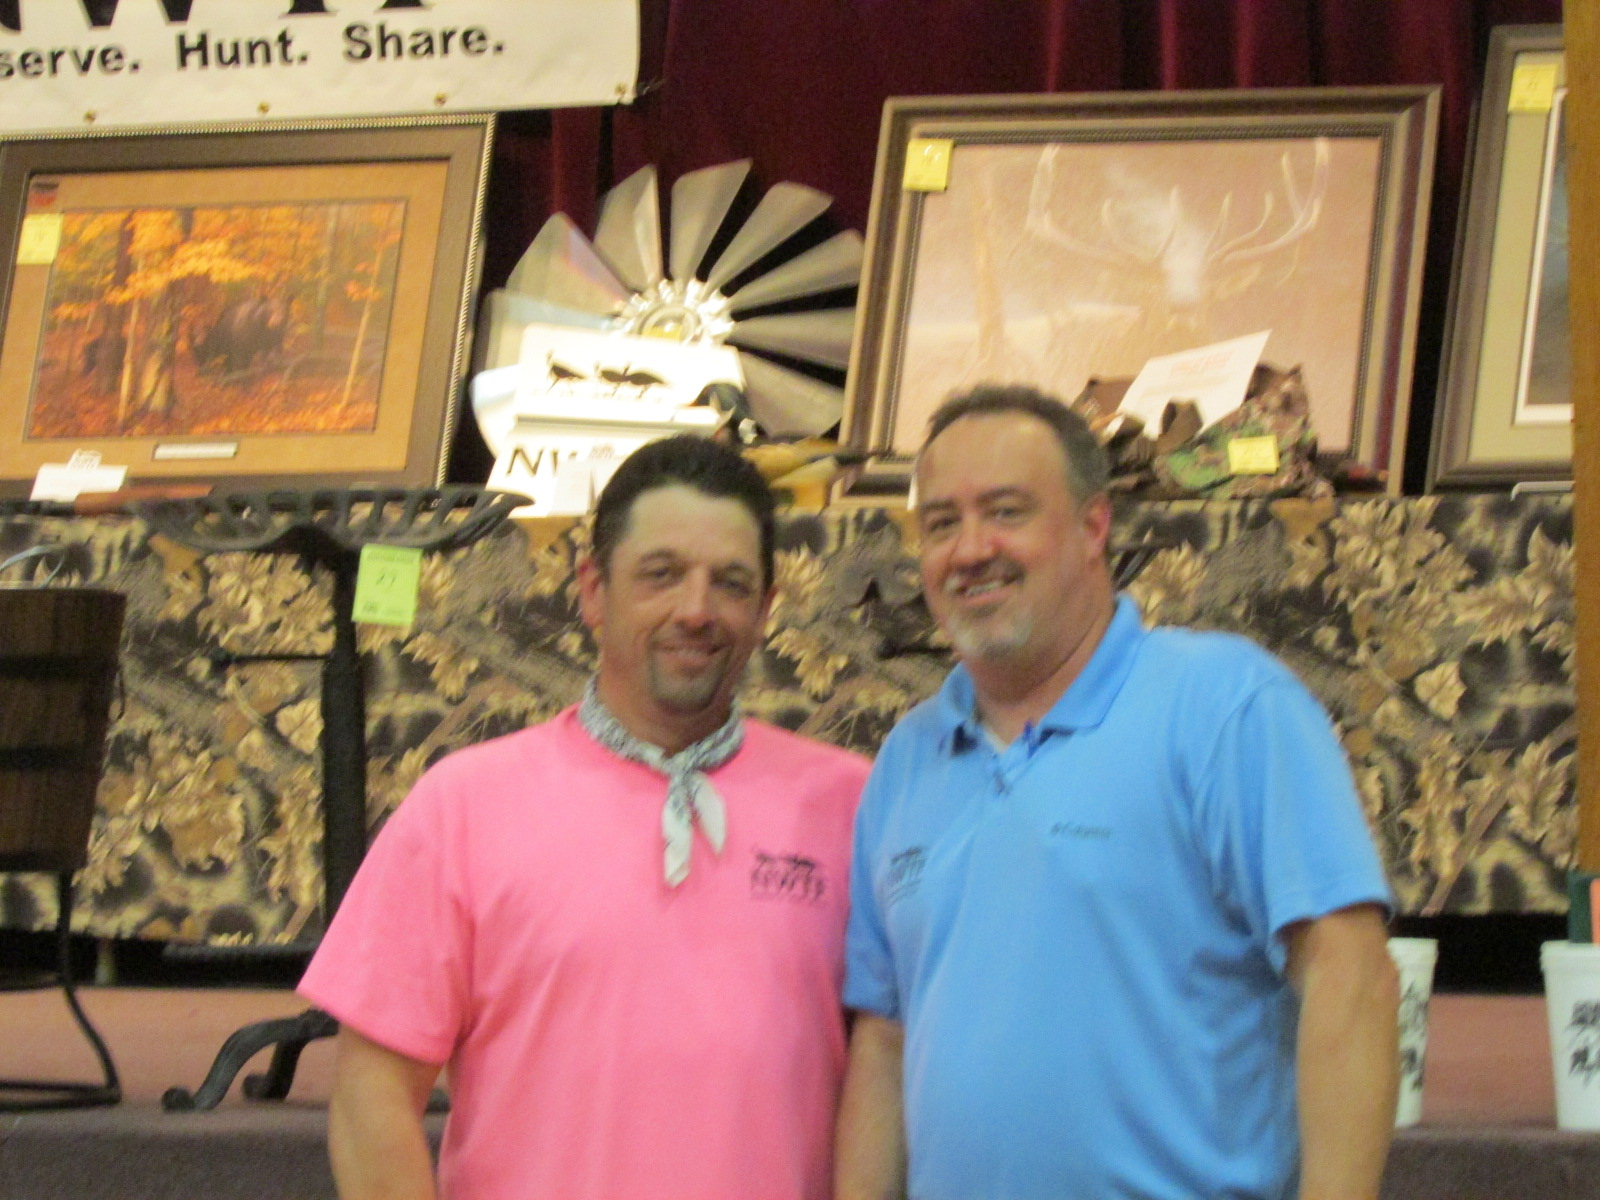 Oak Ridge Gobblers president Randy Book on the left and NWTF representative Dennis Conger served as hosts for the 2014 Oak Ridge Gobblers Hunting Heritage Banquet.